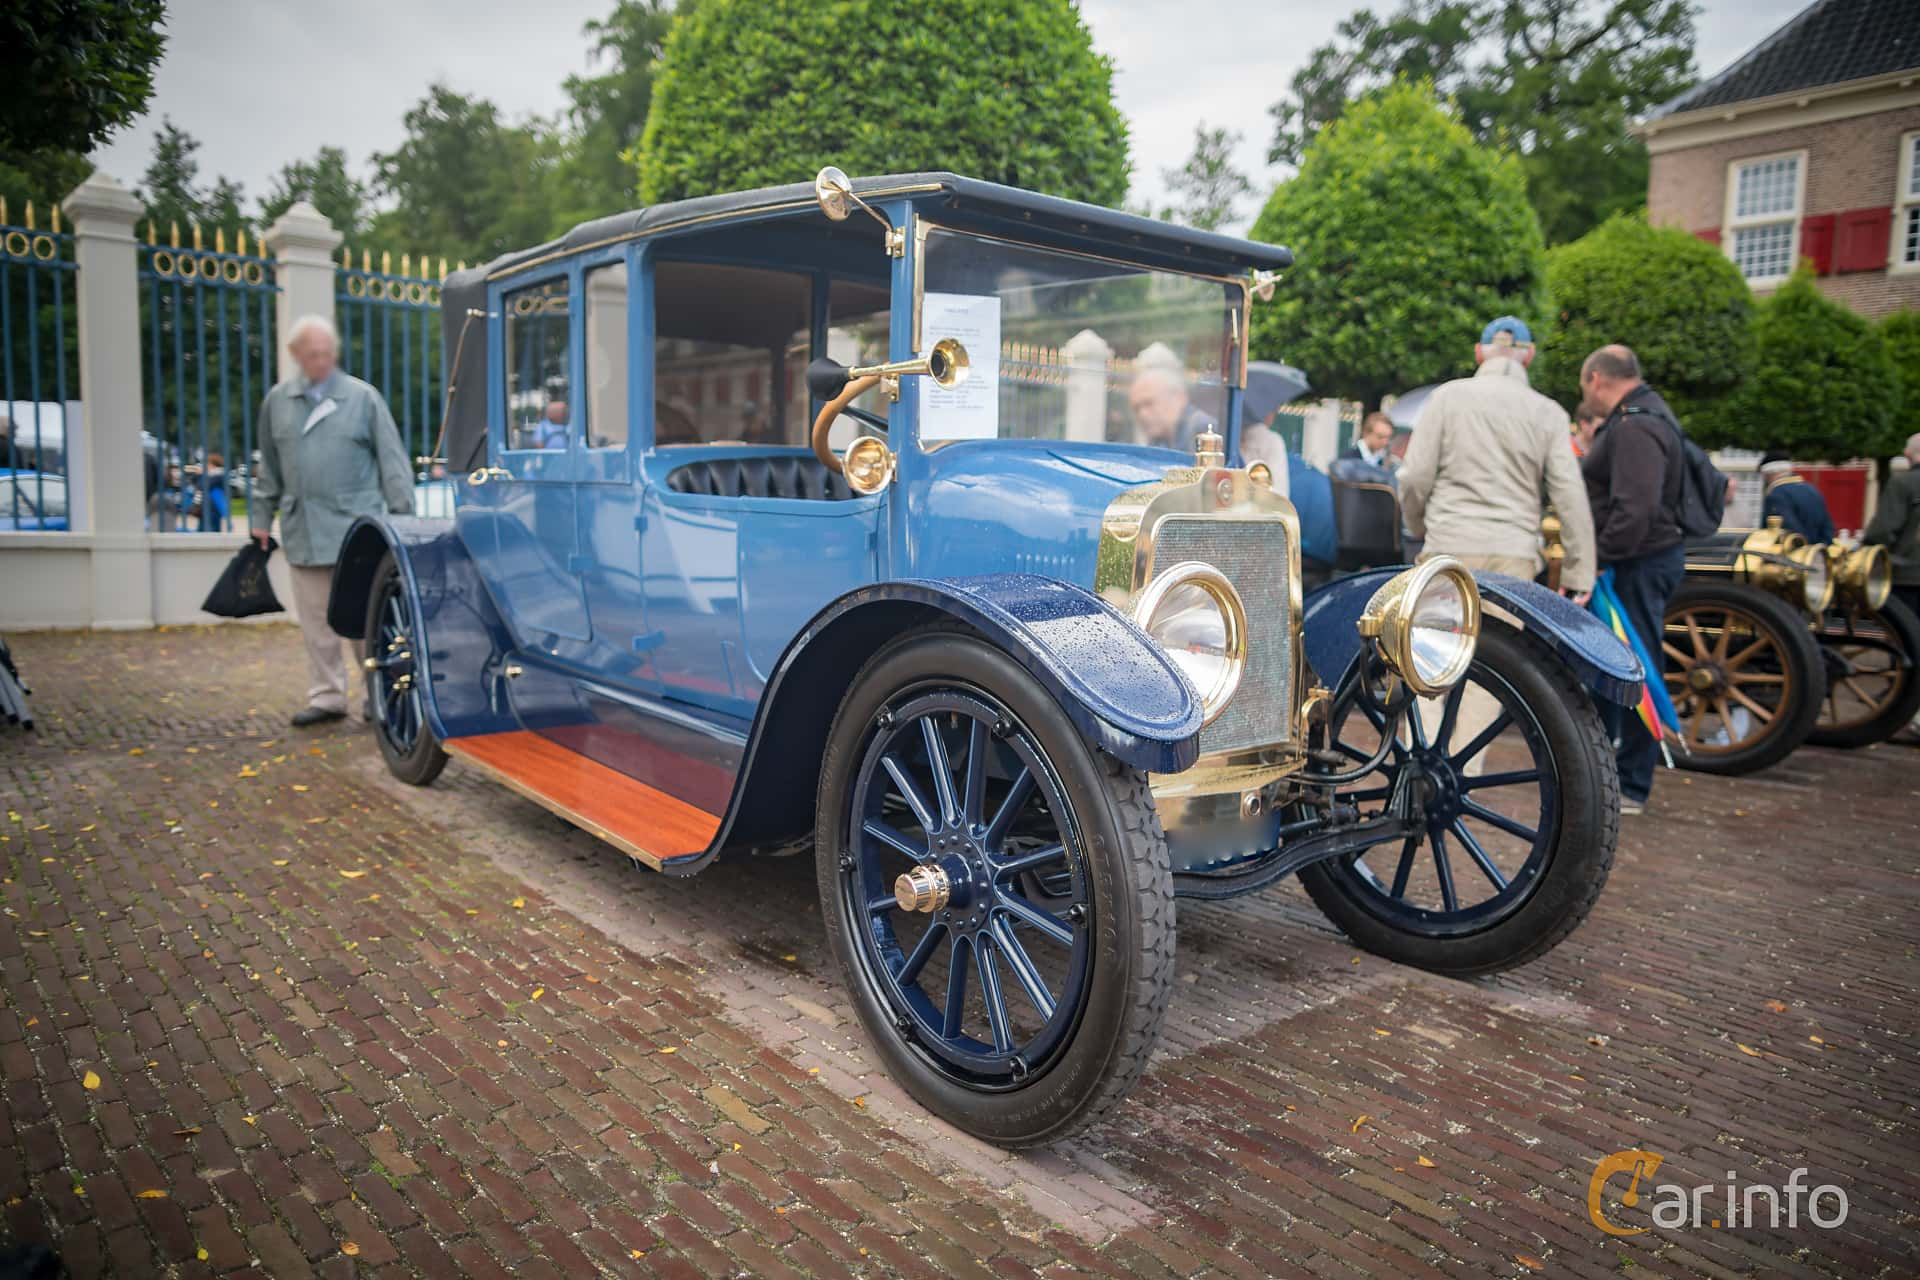 H.E. Hall & co. Hall 3.4 Manual, 21hp, 1915 at Concours d'Élégance Paleis Het Loo 2016